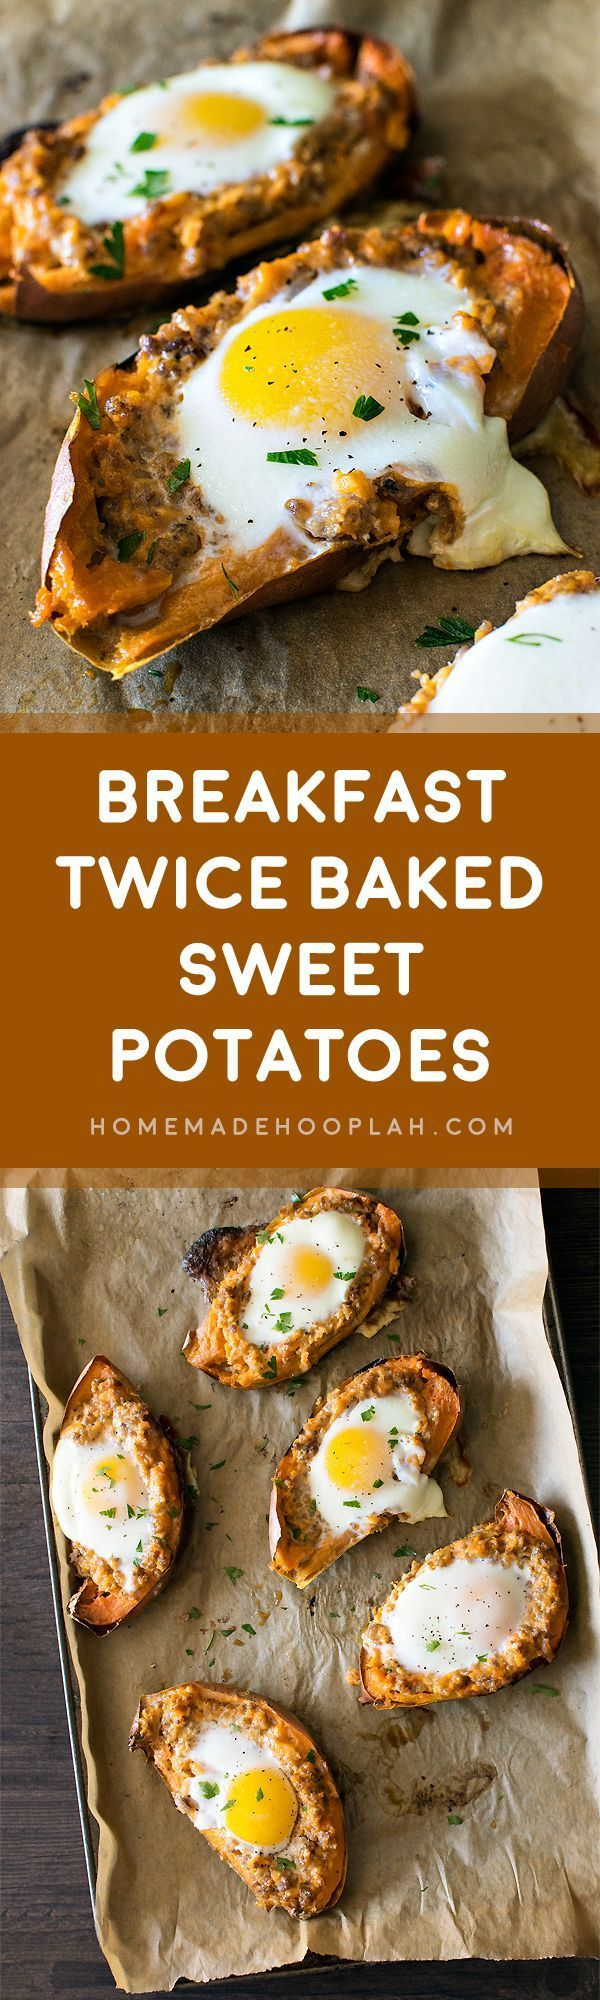 Breakfast Twice Baked Sweet Potatoes! Have the taste of fall all year round! Flavorful breakfast sausage in twice baked sweet potatoes and topped with an over easy egg. | HomemadeHooplah.com: